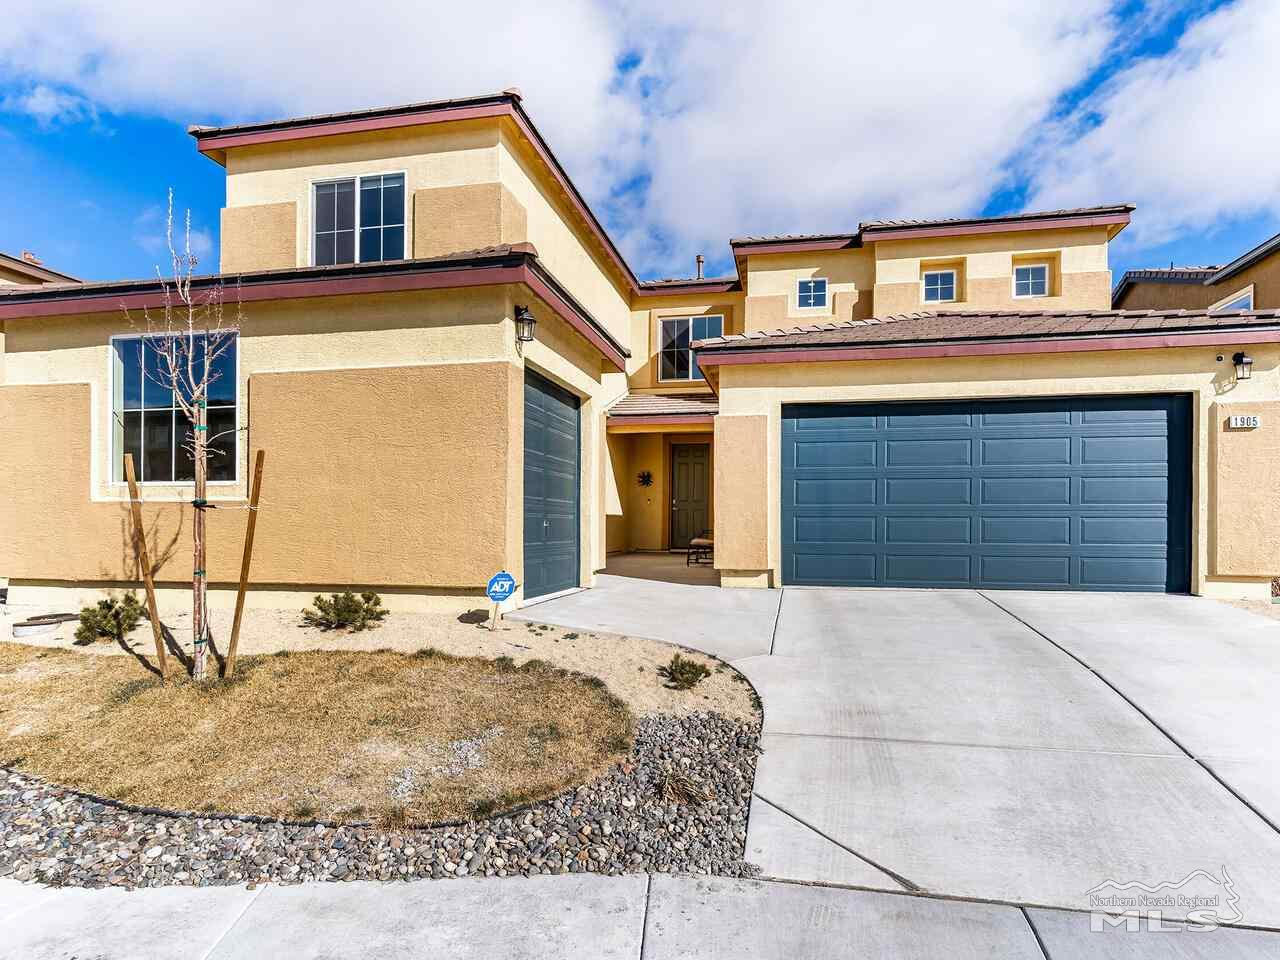 Image for 1905 Painted Sky Way, Sun Valley, NV 89433